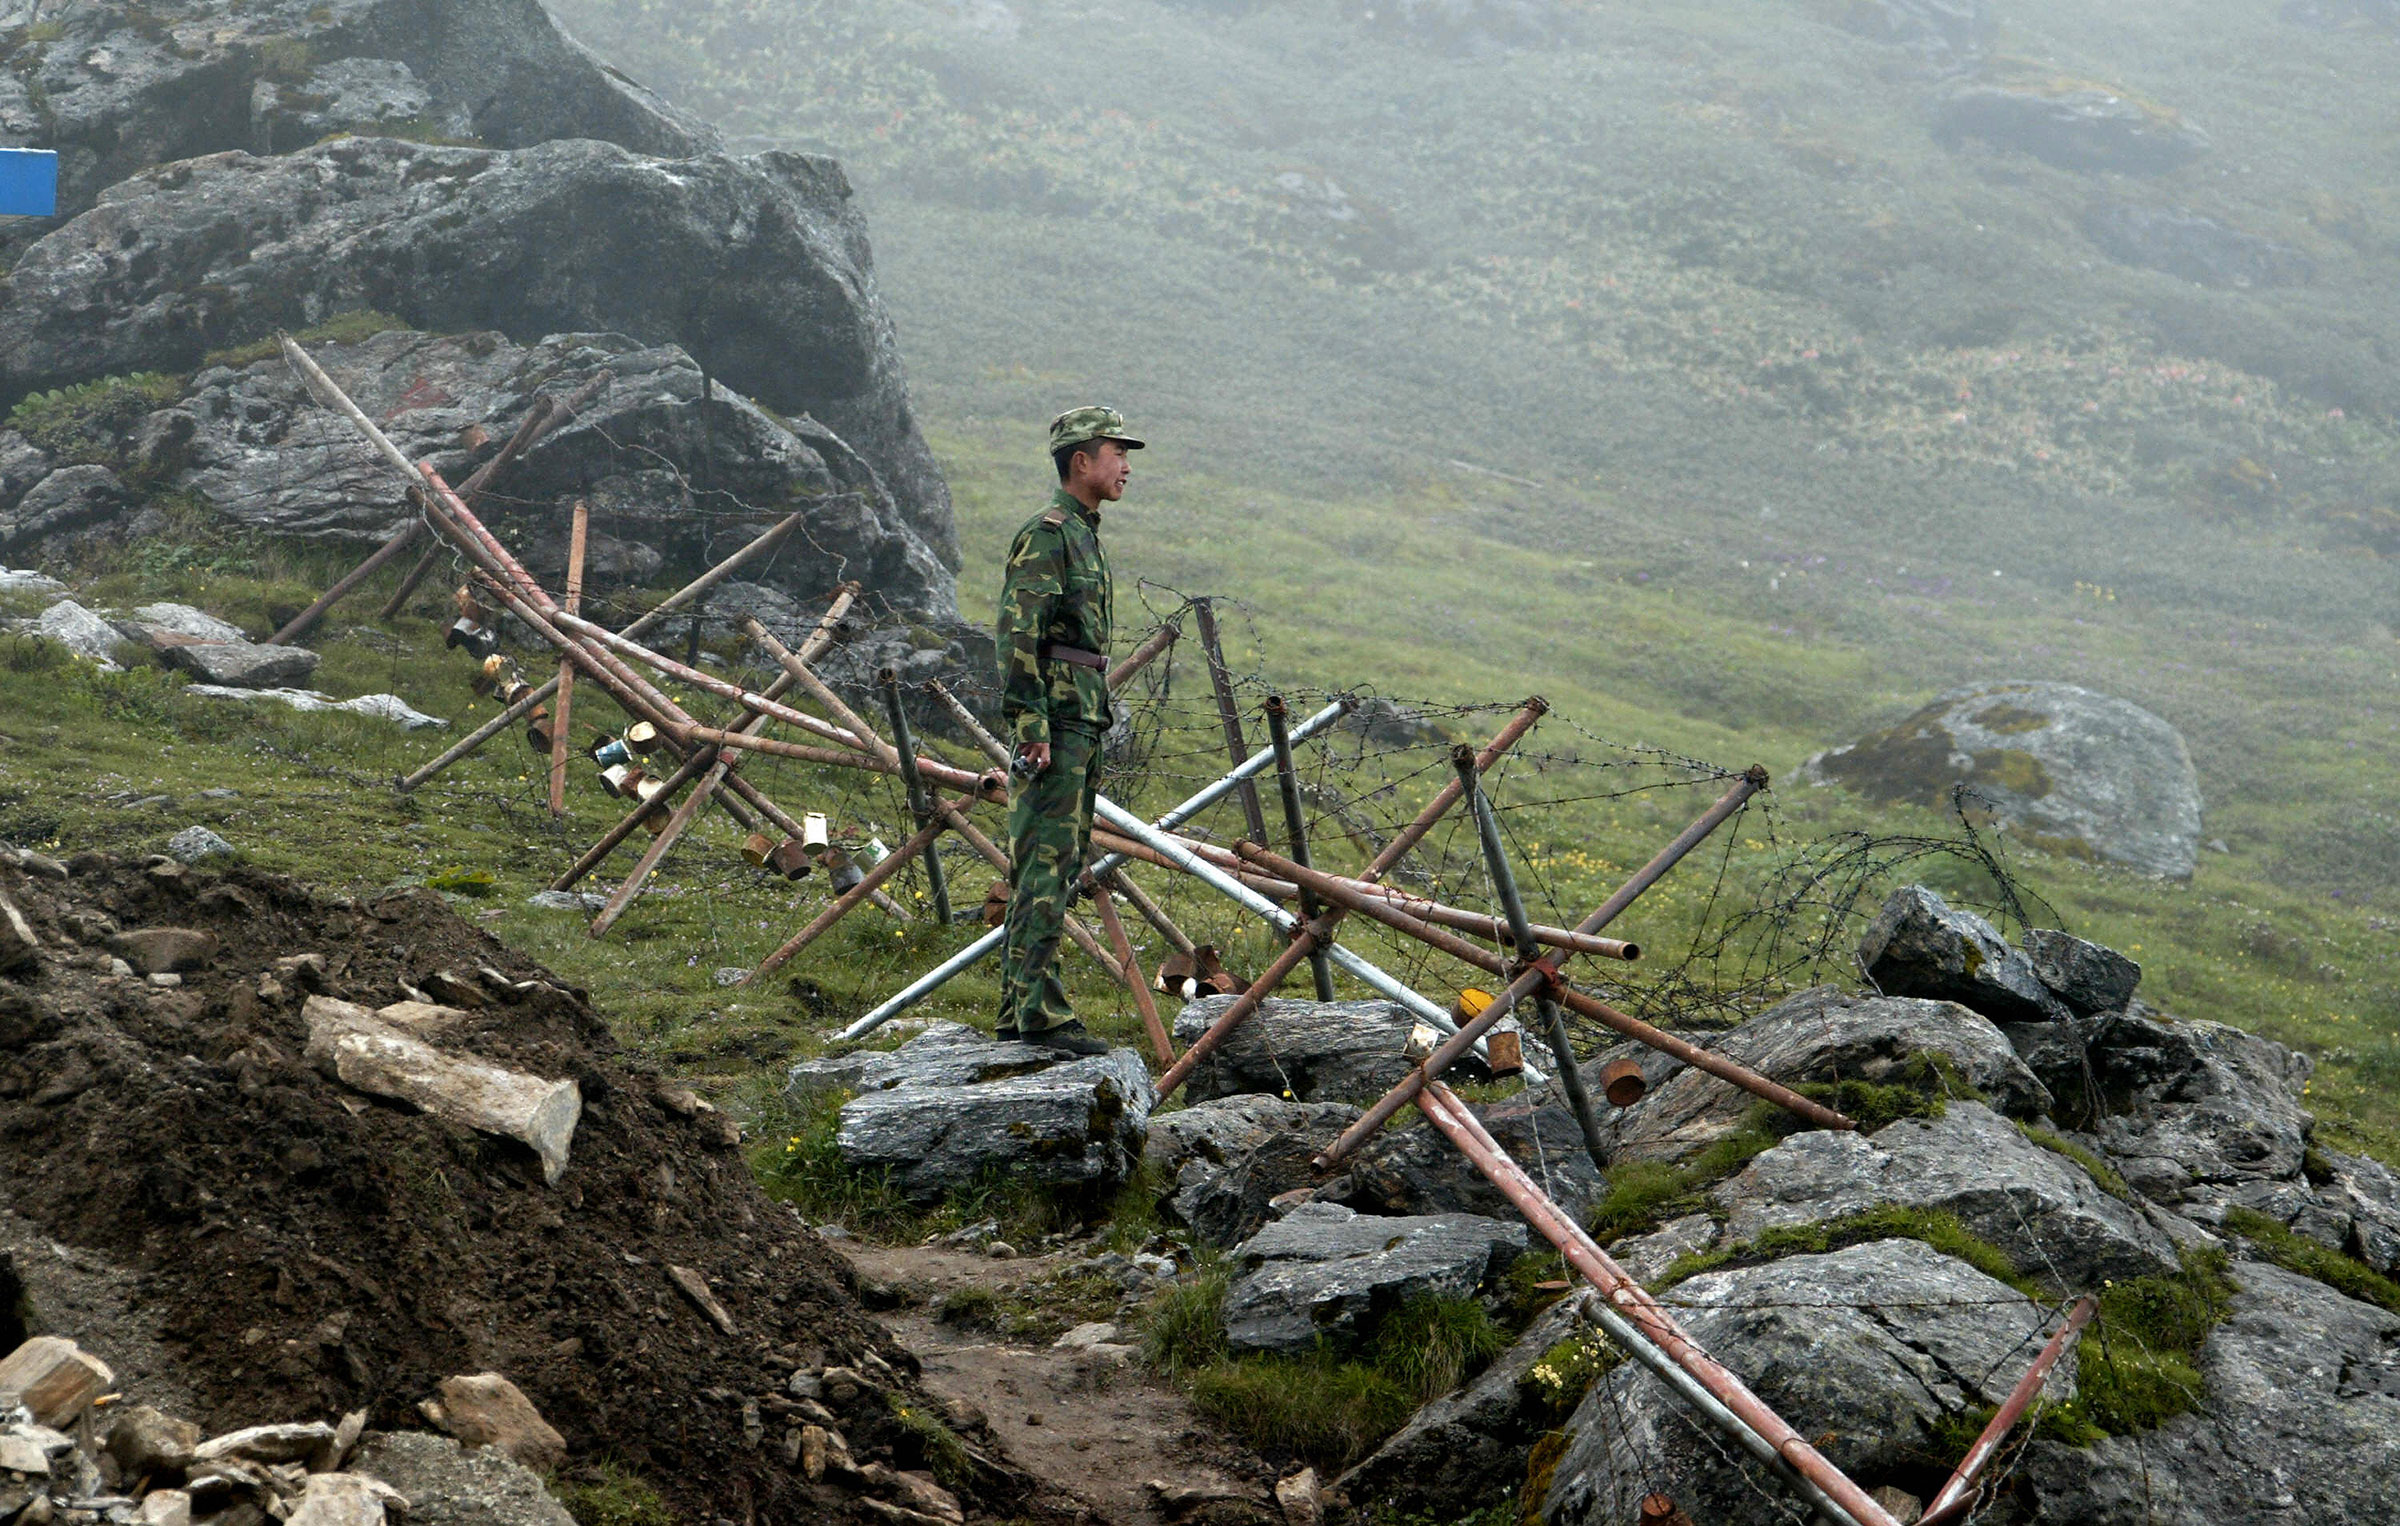 A Chinese soldier stands guard on the Chinese side of the ancient Nathu La border crossing between India and China on July 10, 2008.